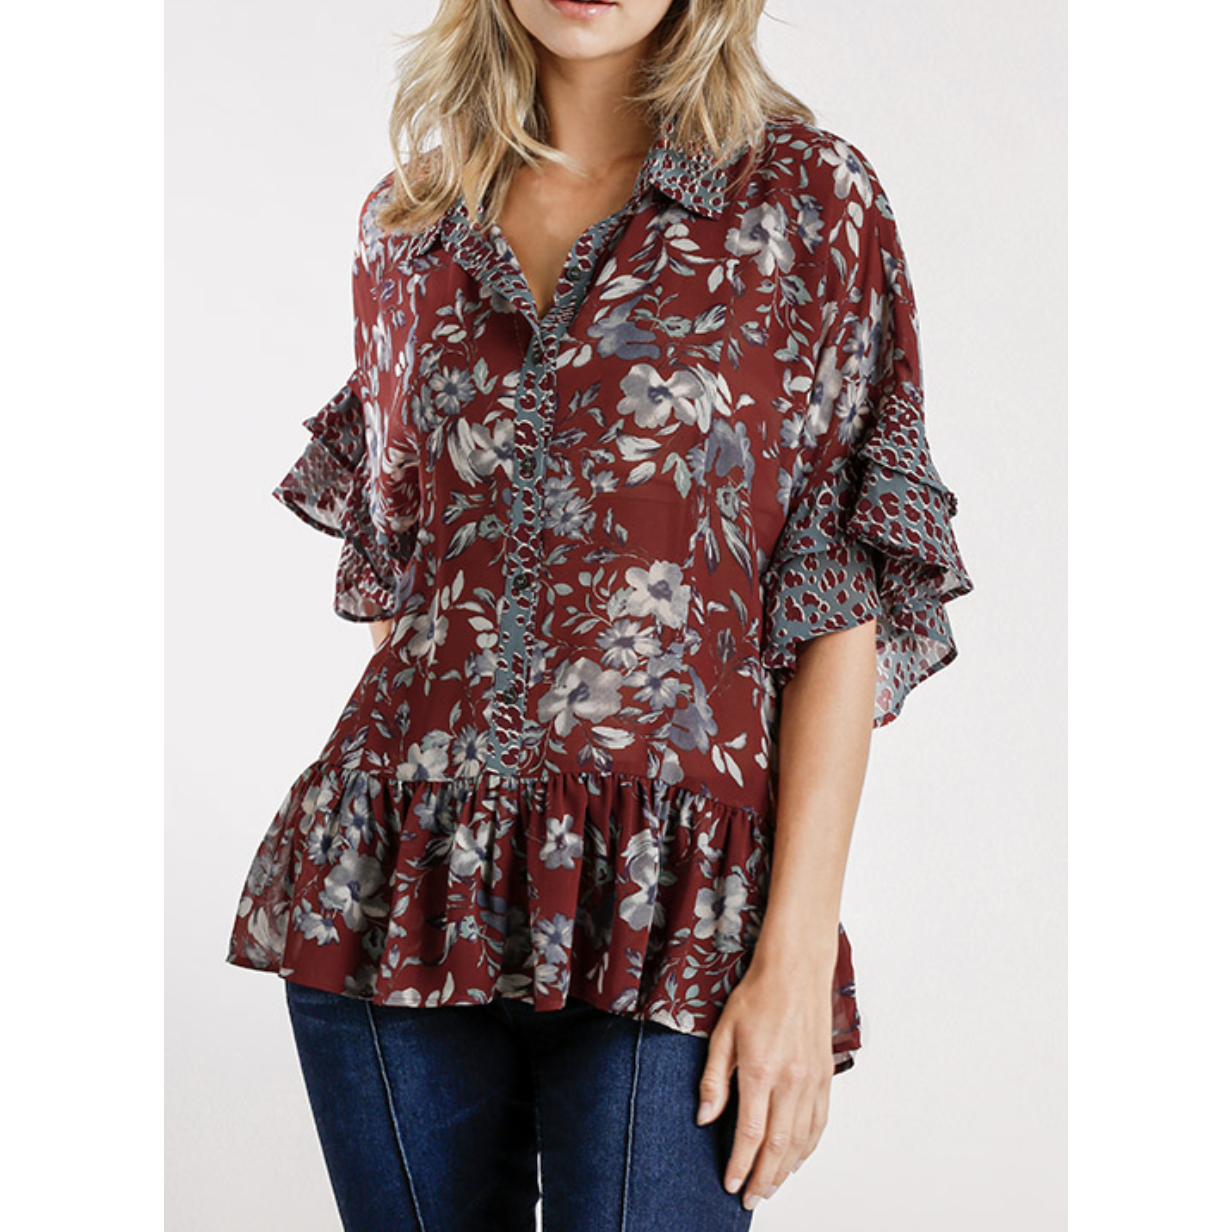 Mix Print Blouse